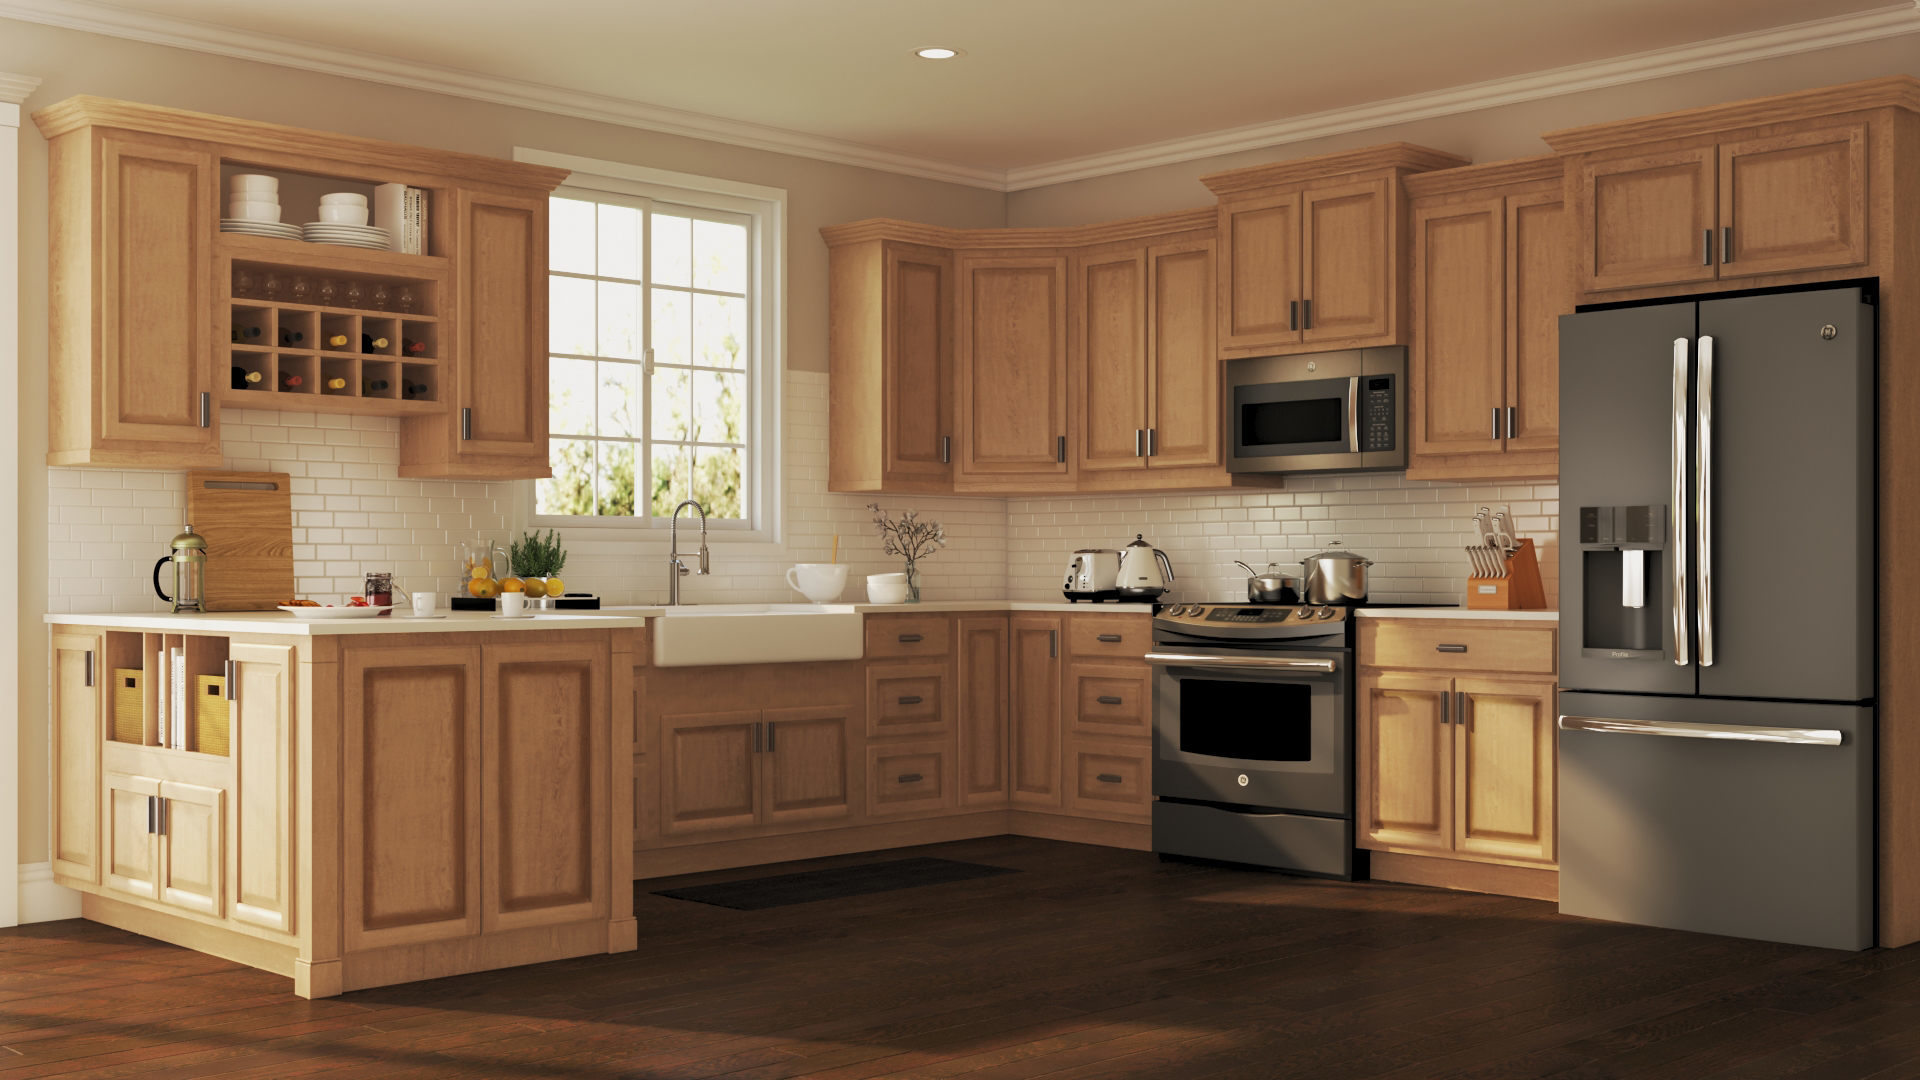 Countertops And Cabinets Do Come In Different Shapes